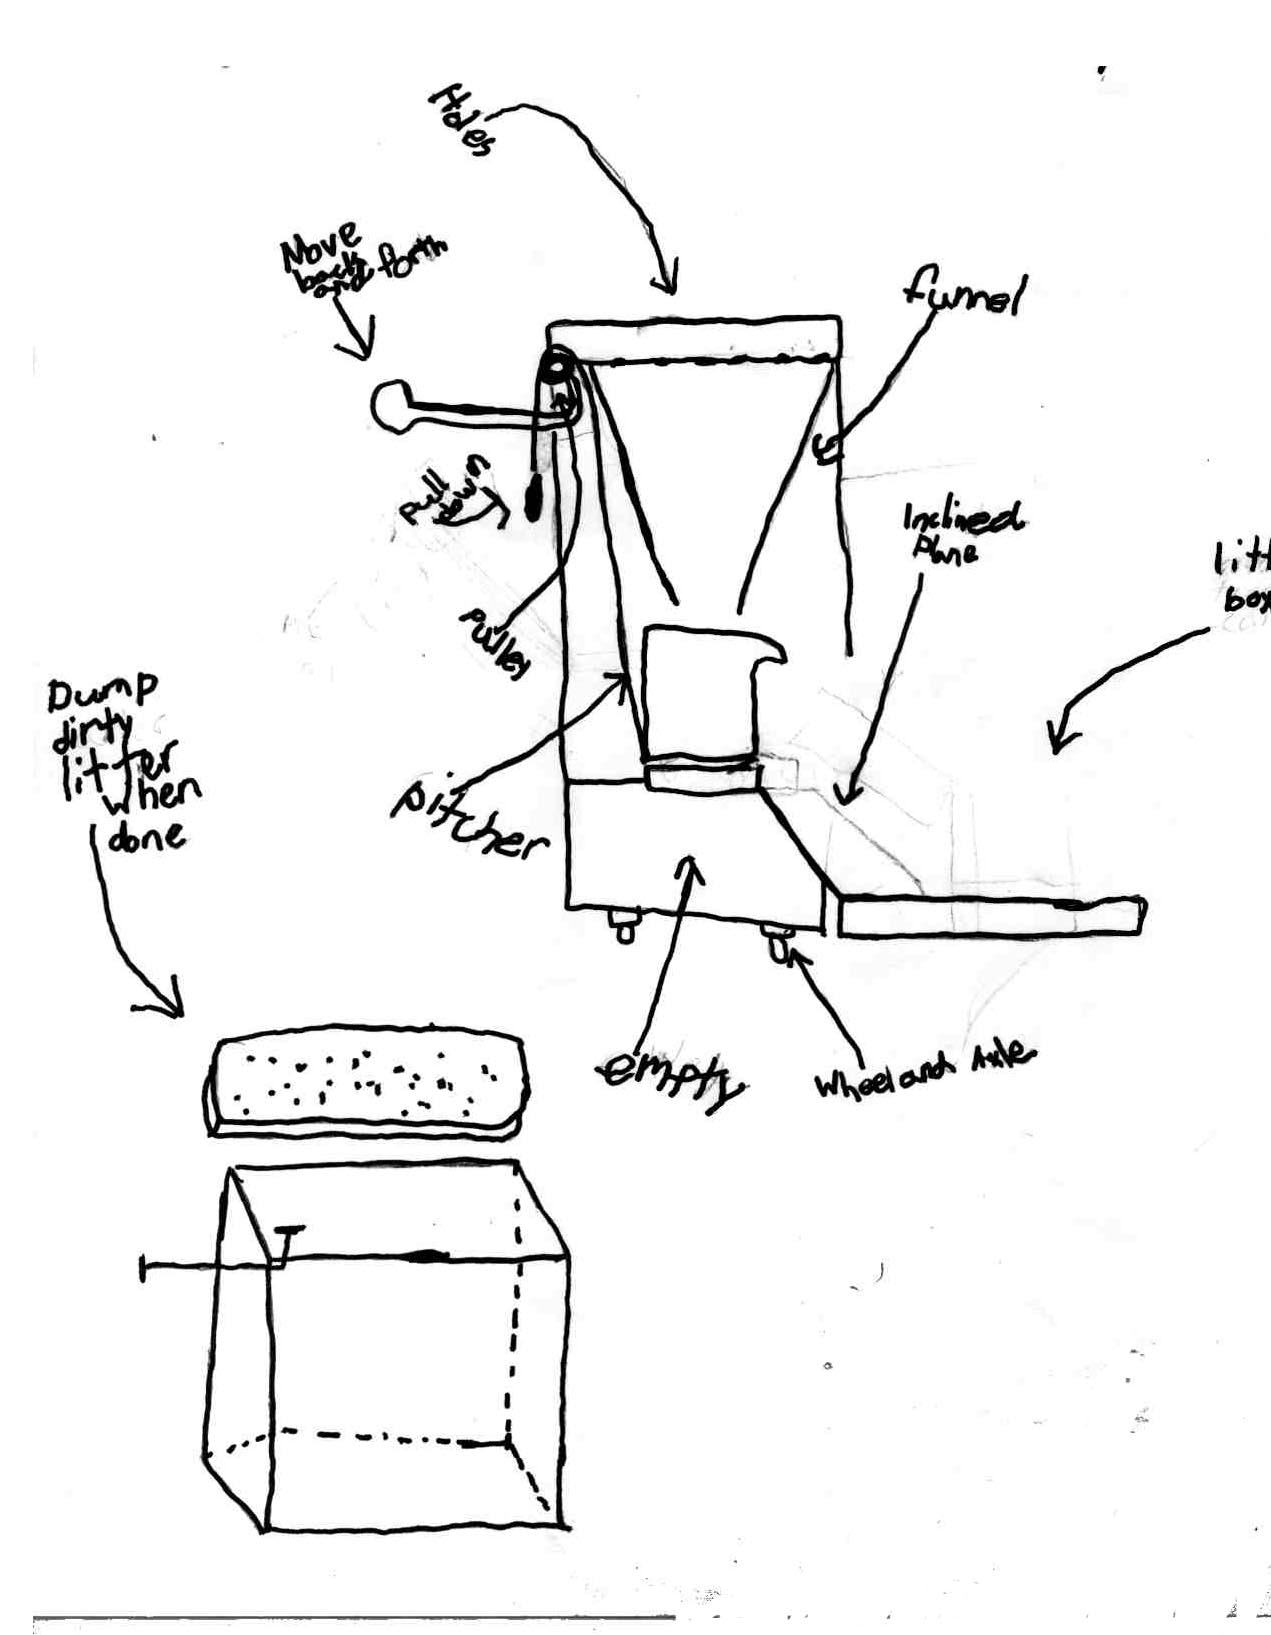 Nowell's technical drawing of his invention, the Litter Sifter